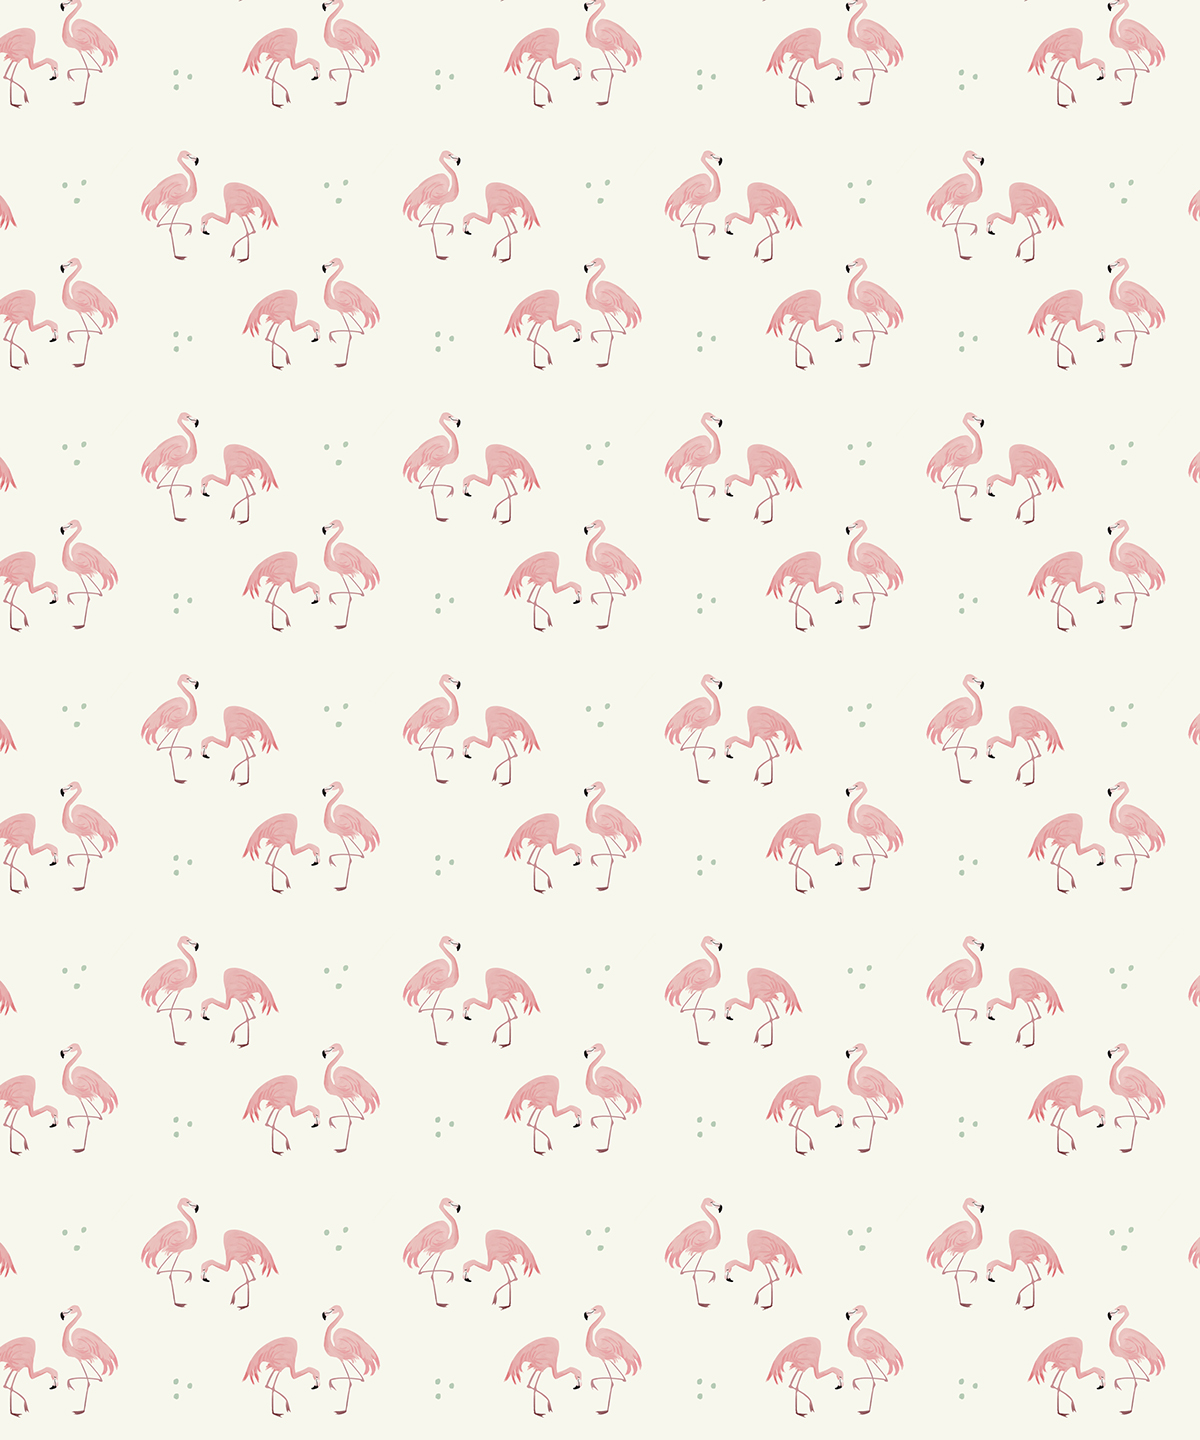 flamingos summer surface design pattern Character design  home decor society6